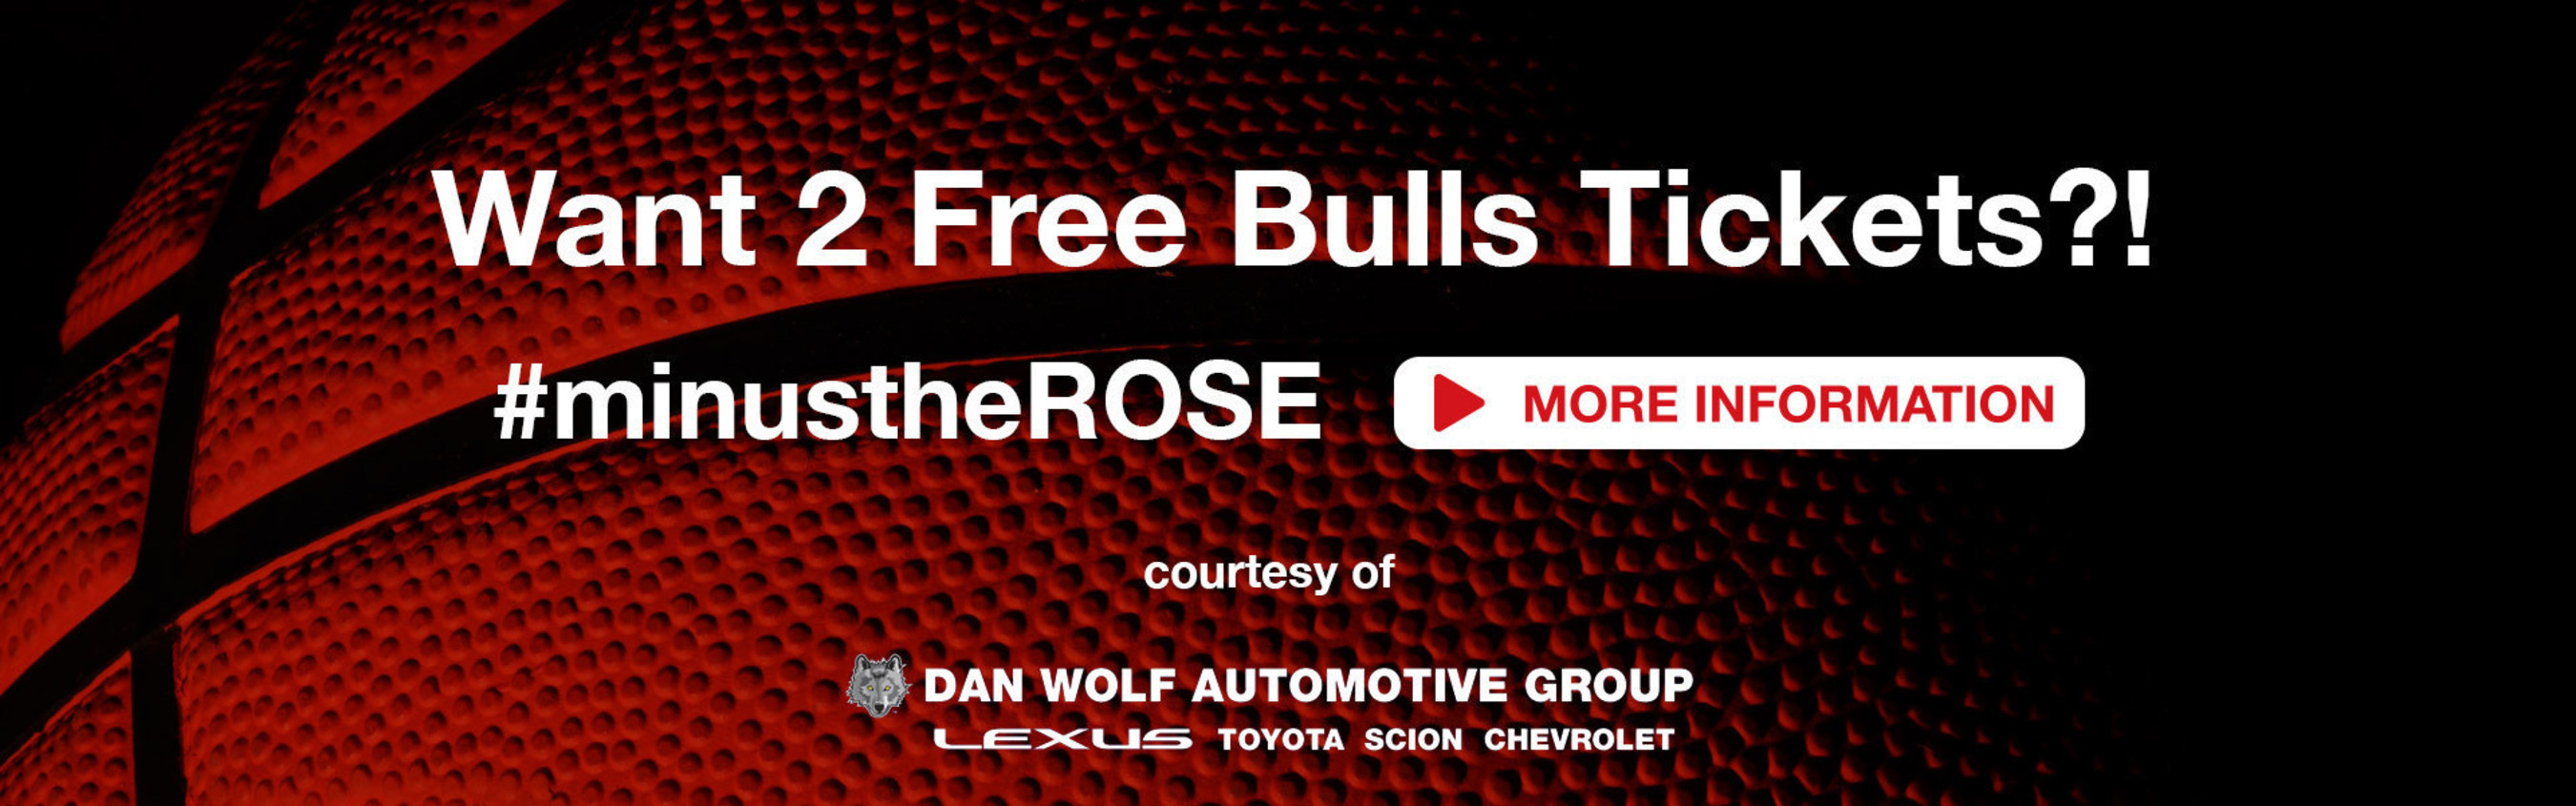 Toyota of Naperville offers free Bulls tickets